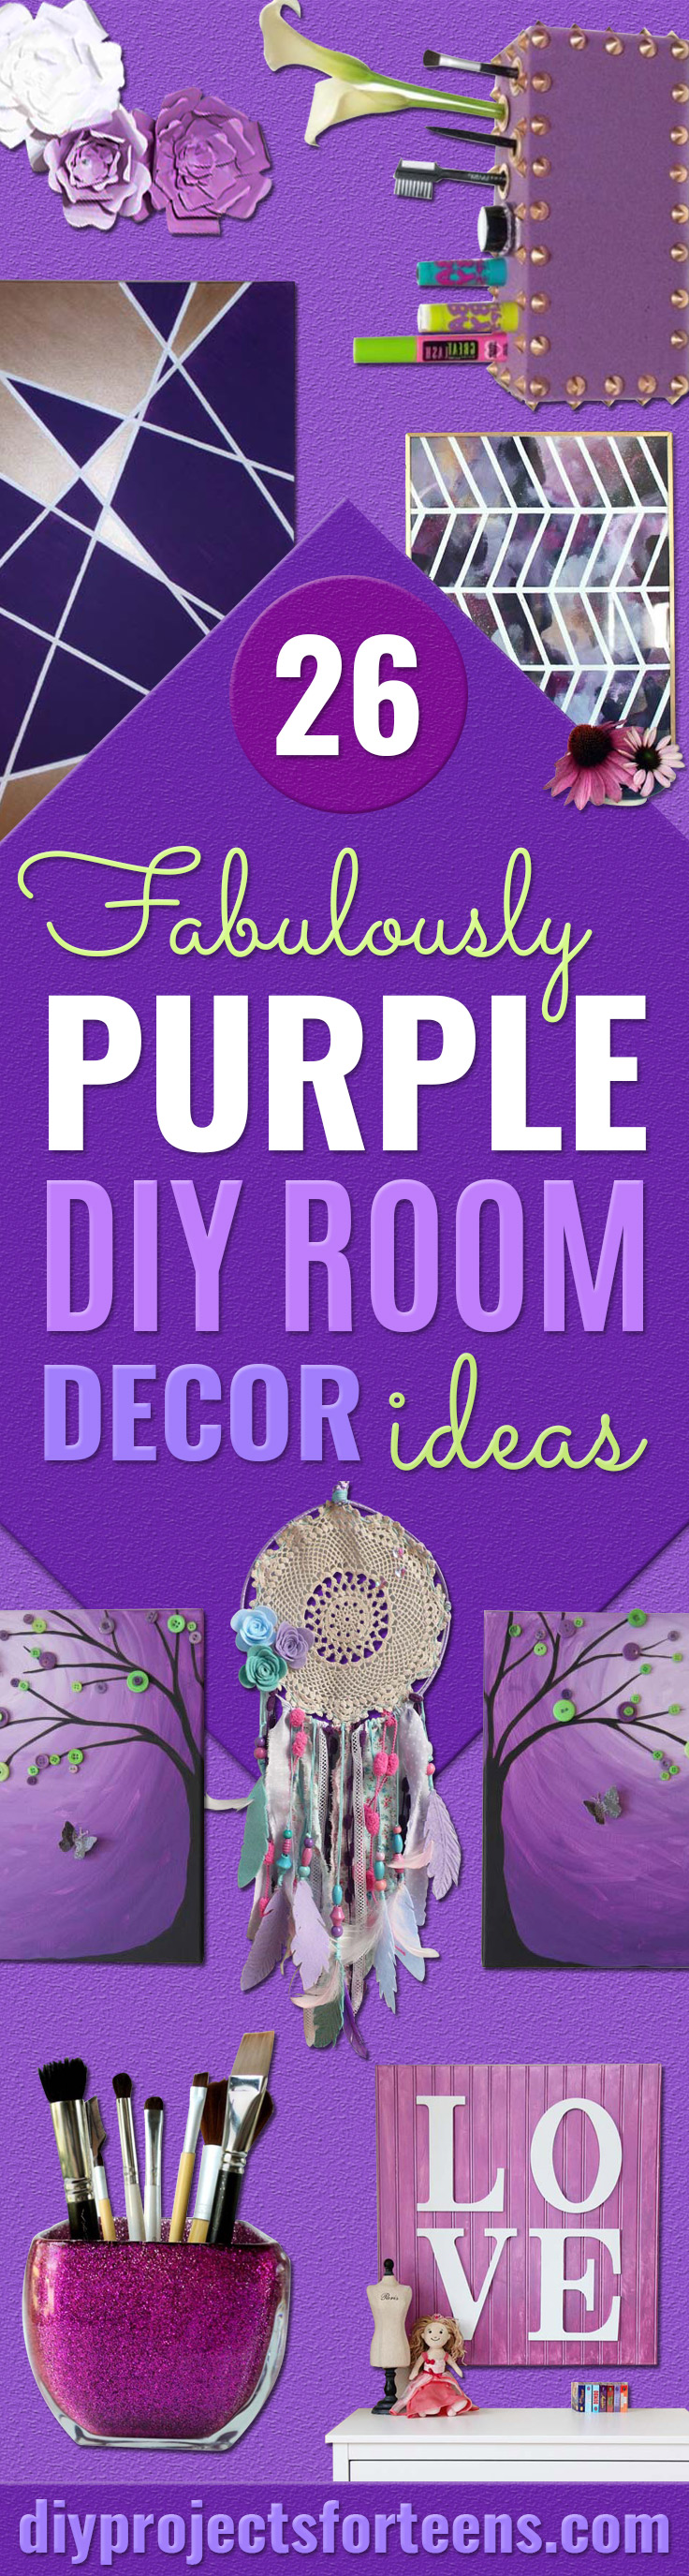 Bedroom Decor Purple 26 fabulously purple diy room decor ideas - diy projects for teens